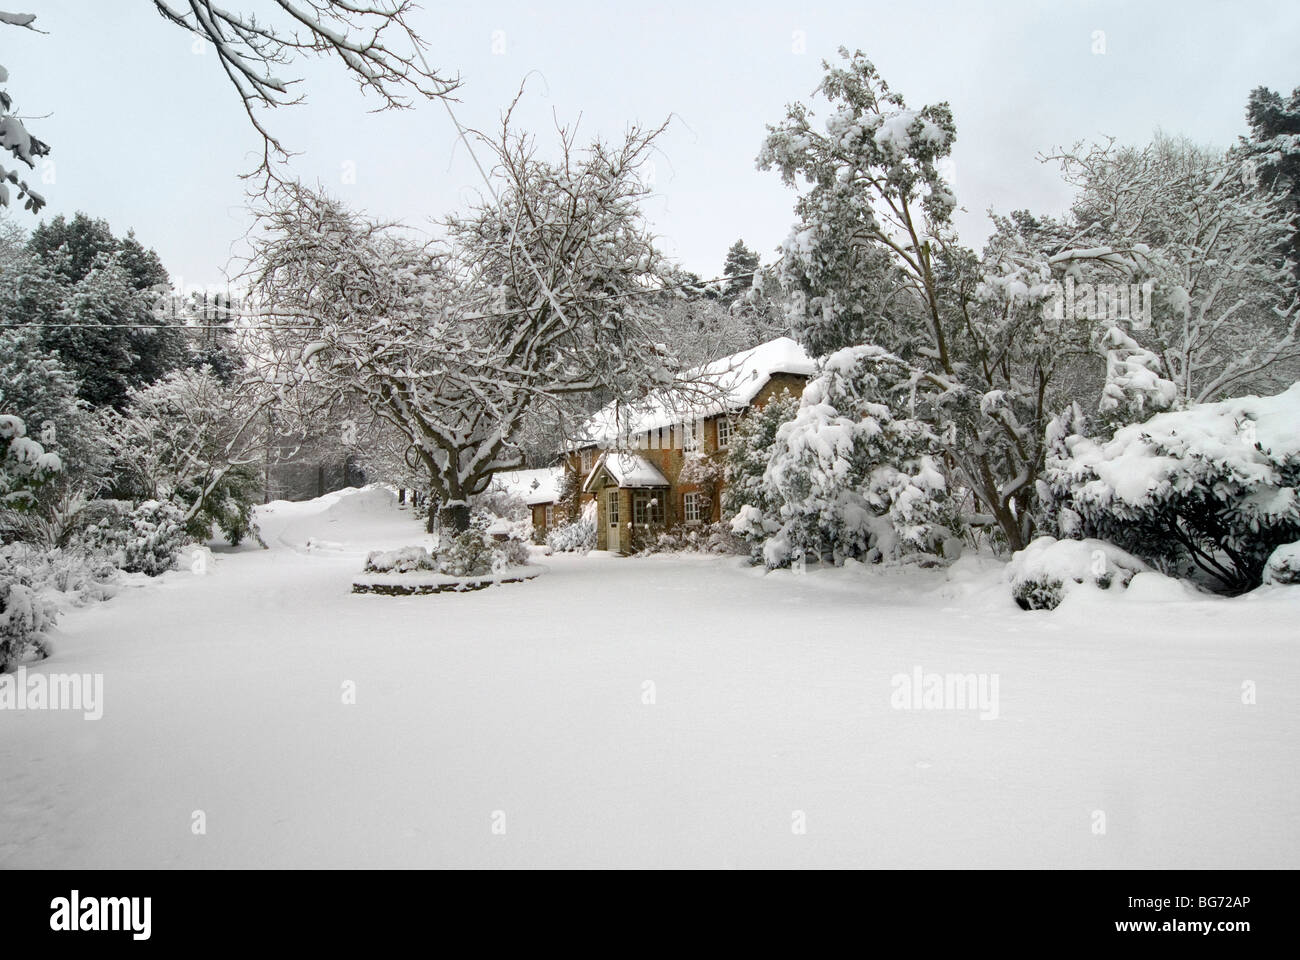 Picturesque Christmas Card Image Of A Snowy Landscape Scene With Cosy Country Cottage Surrounded By Trees And The Virgin Snow